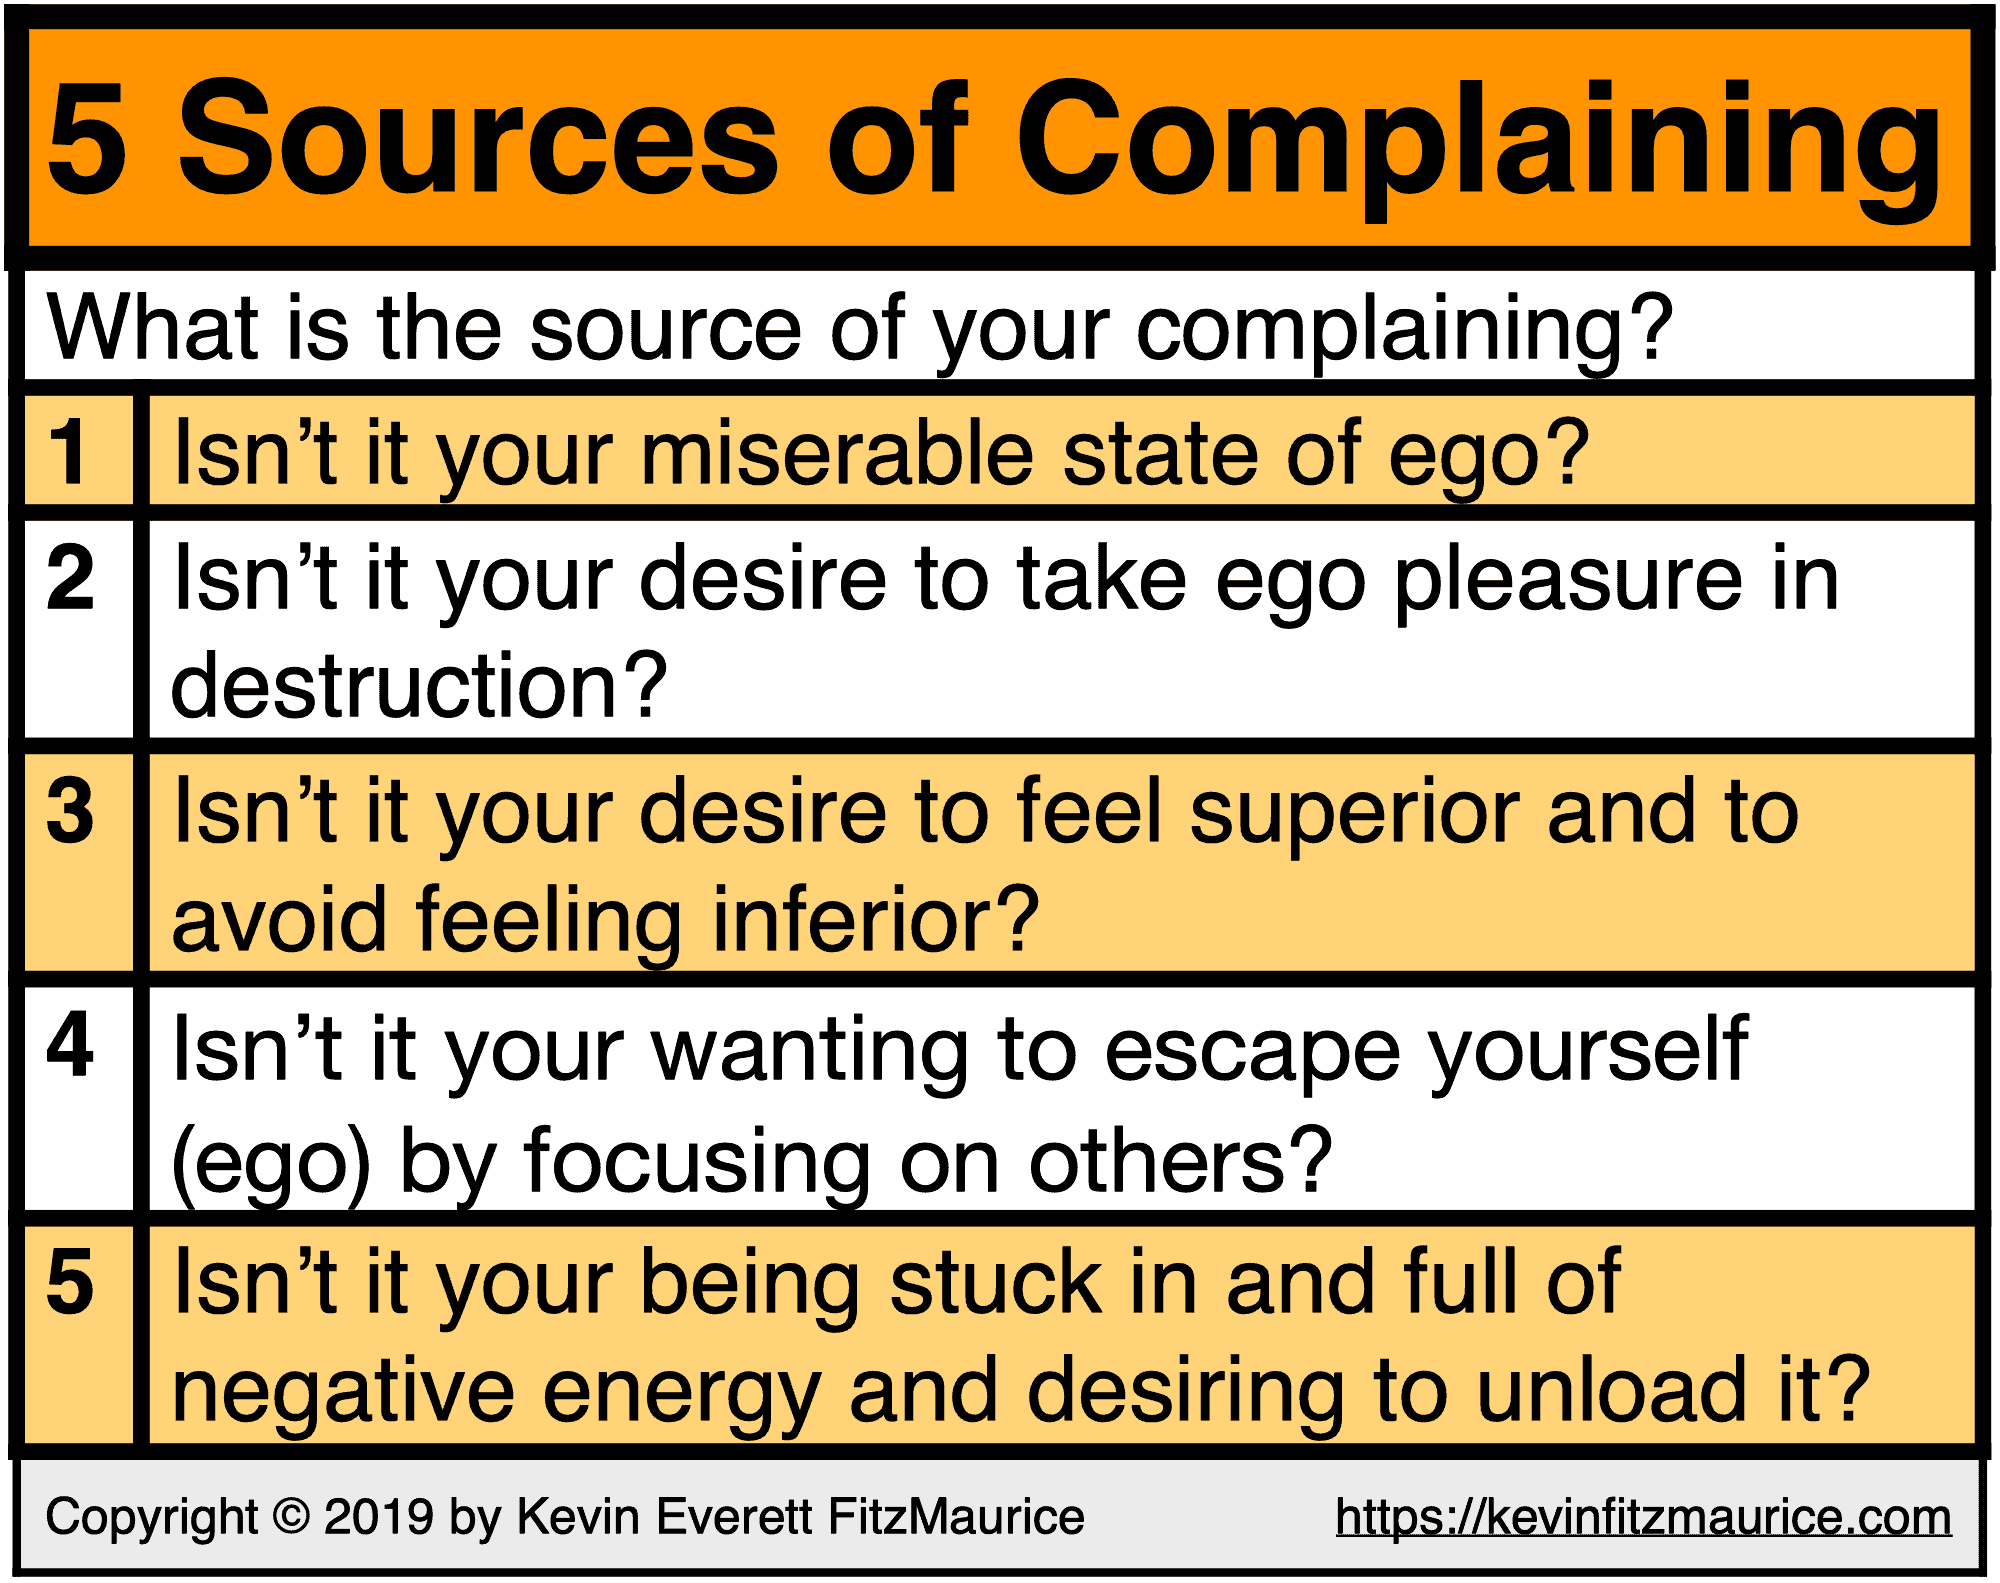 5 Sources of Complaining